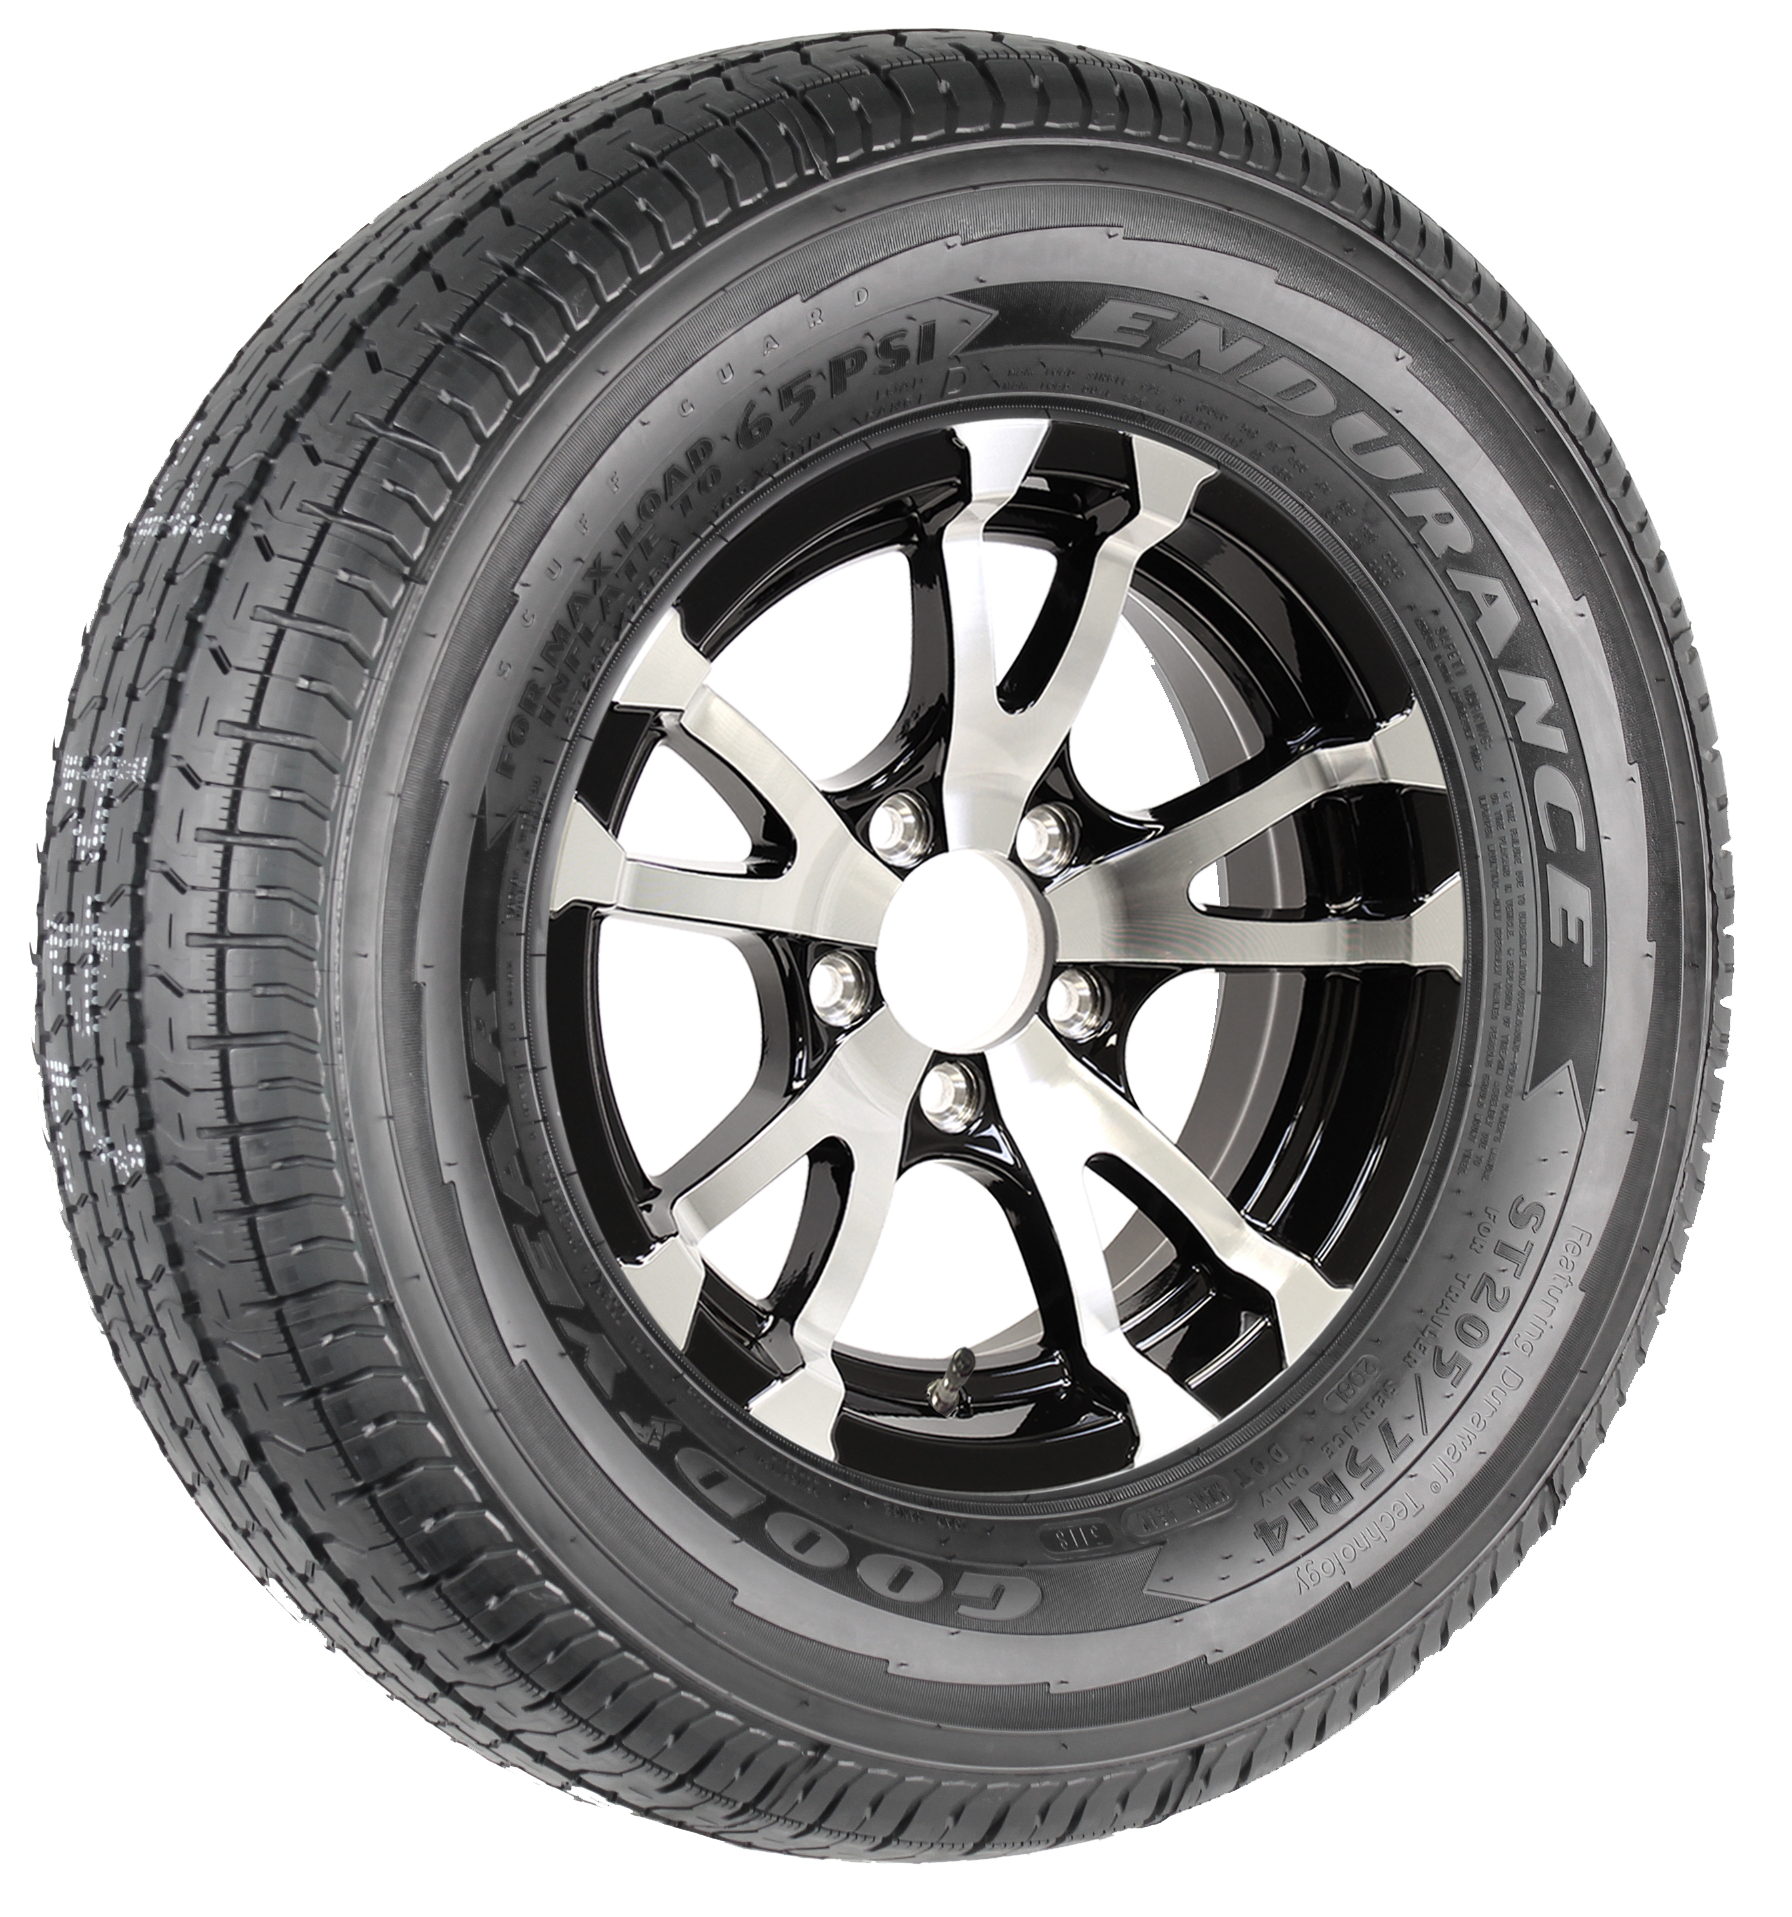 "Goodyear Endurance ST205/75R14 LRD Radial Tire on 14"" 5-Lug Avalanche Black Aluminum Assembly Image"